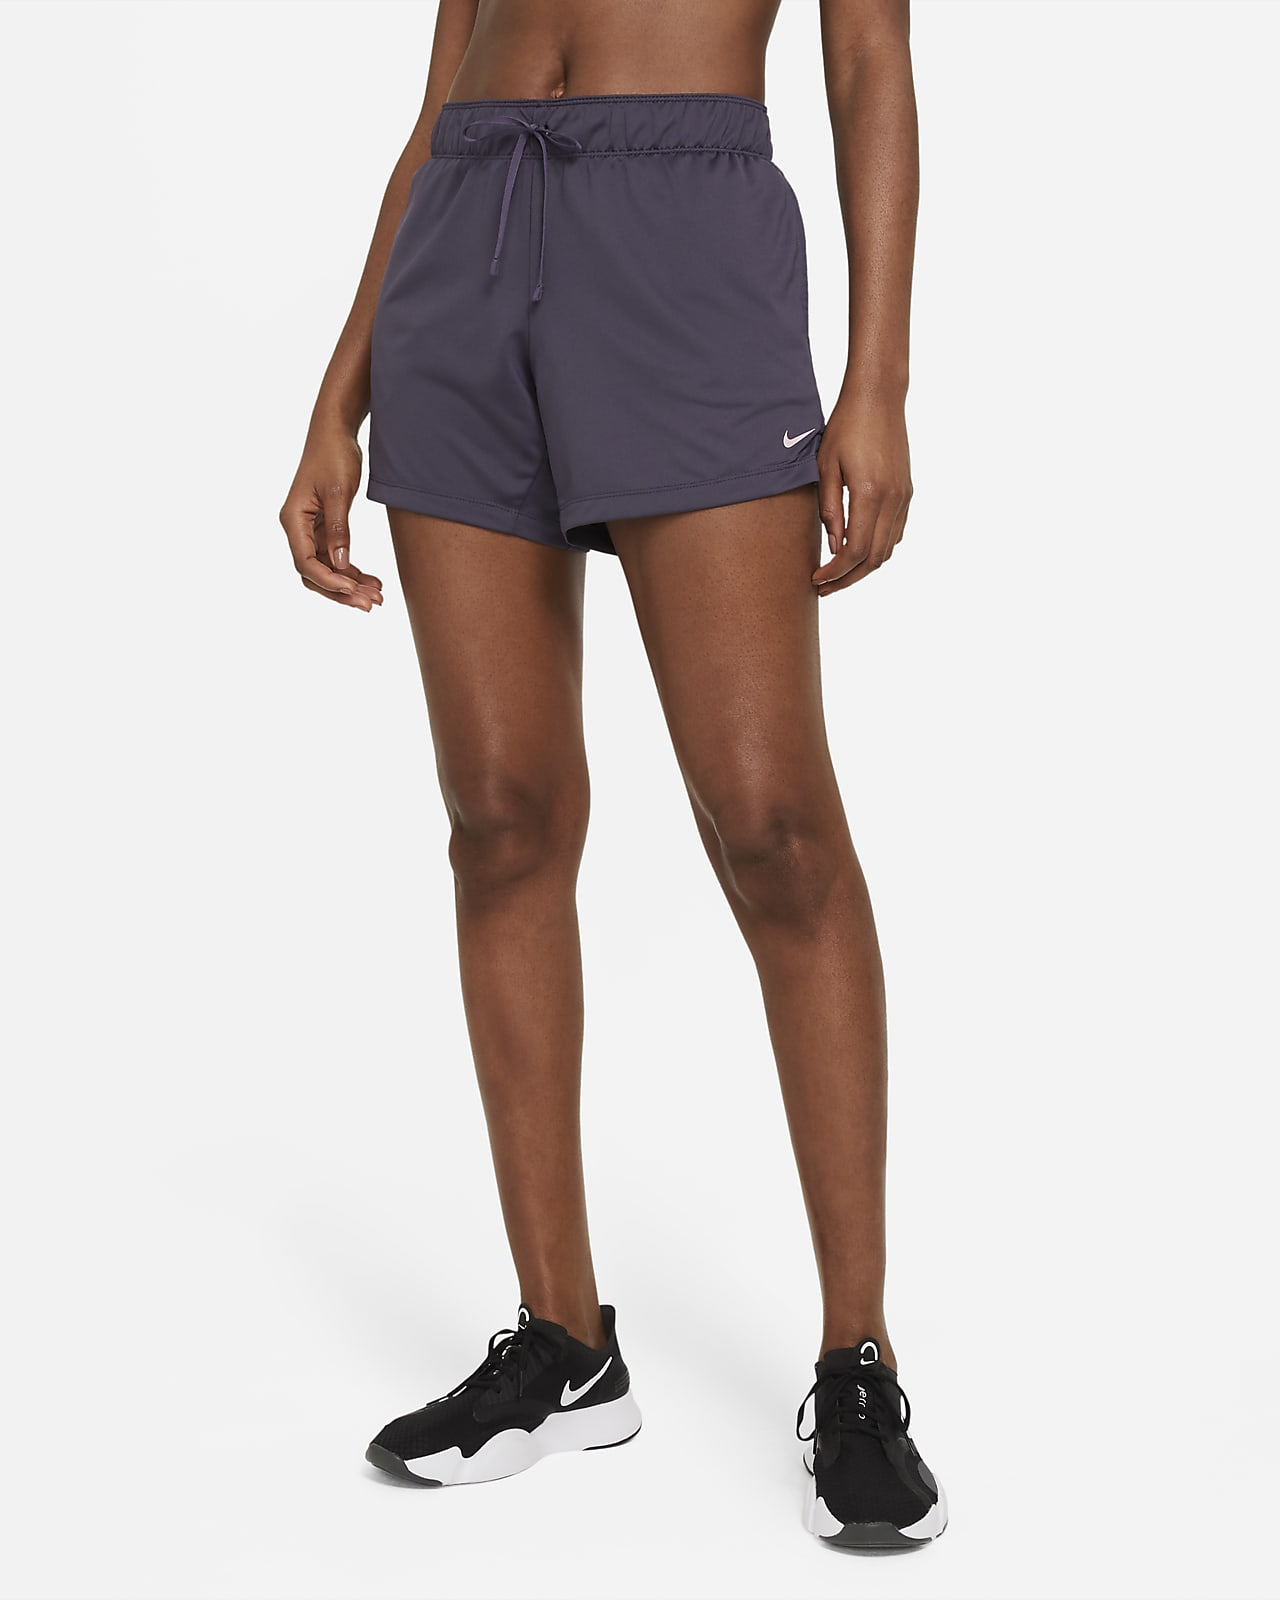 Nike Dri-FIT Attack Women's Training Shorts